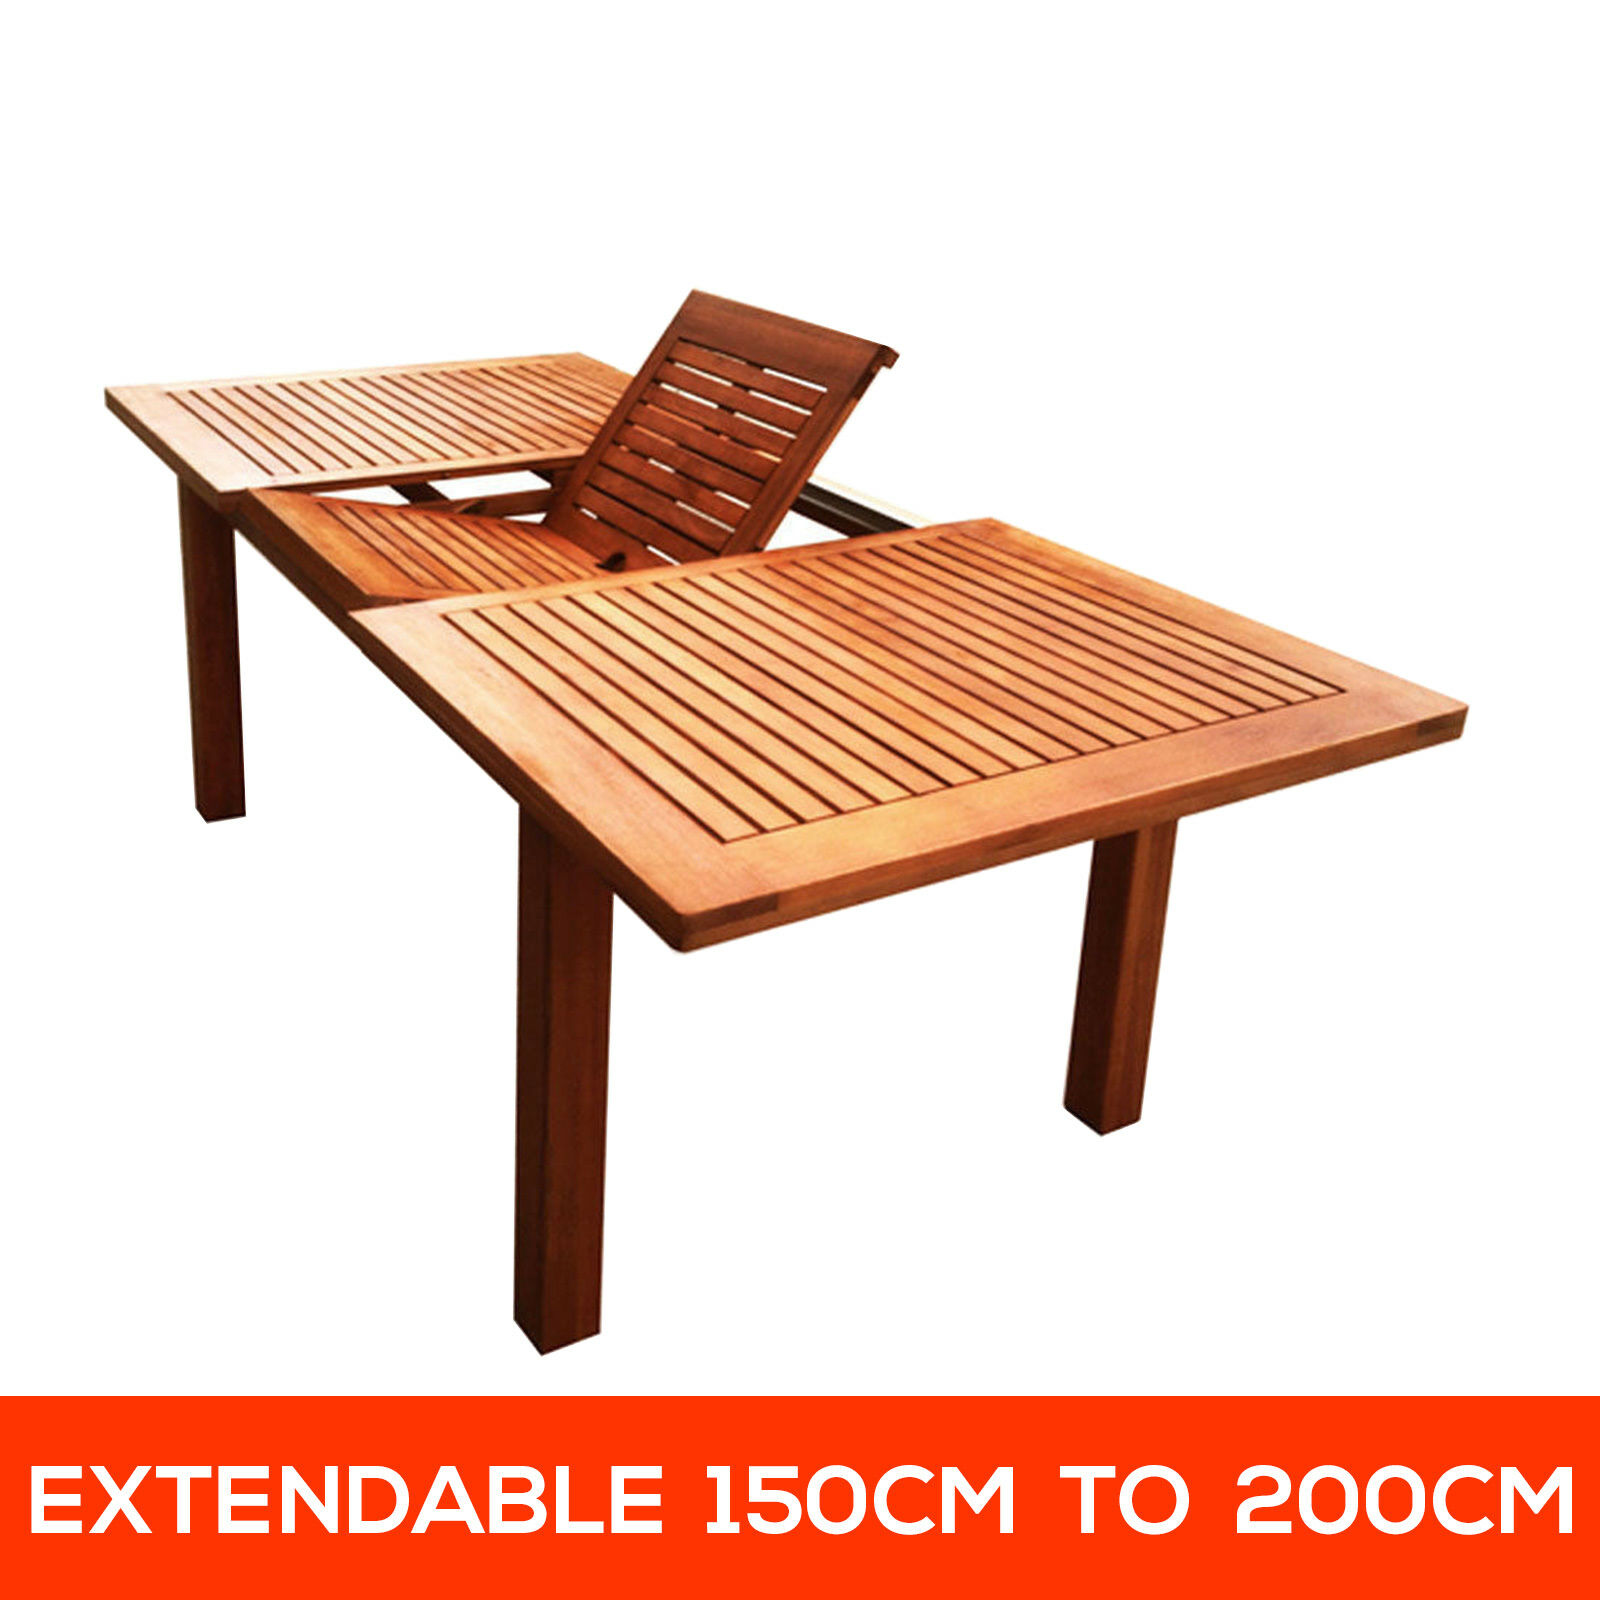 eucalyptus timber extendable wooden outdoor dining table garden furniture aud picclick au. Black Bedroom Furniture Sets. Home Design Ideas